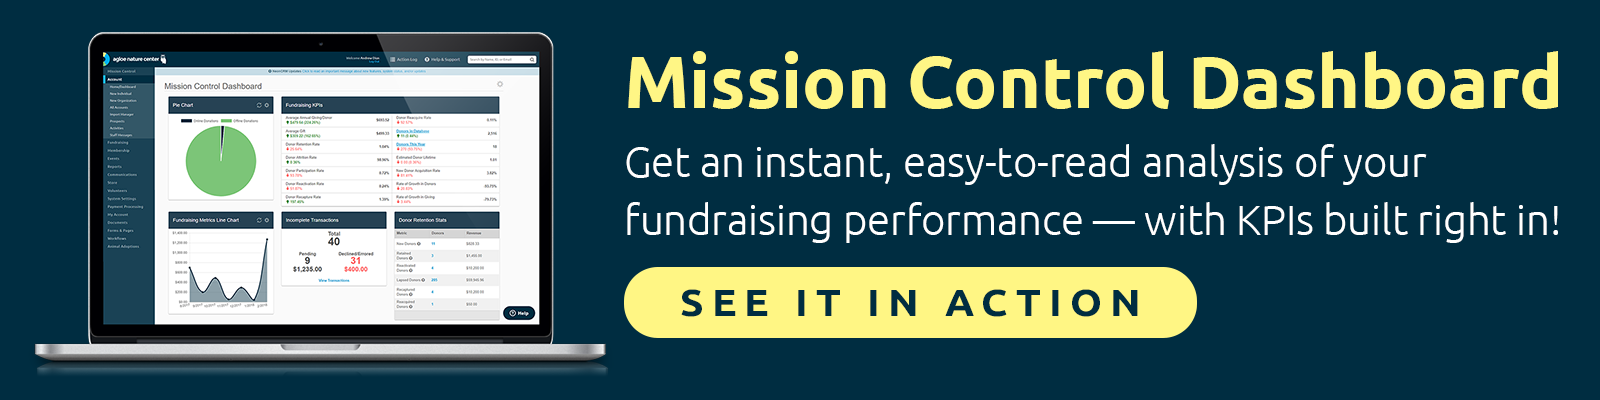 NeonCRM's Mission Control Dashboard gives you instant, easy-to-understand metrics — with the Fundraising KPIs built right in!